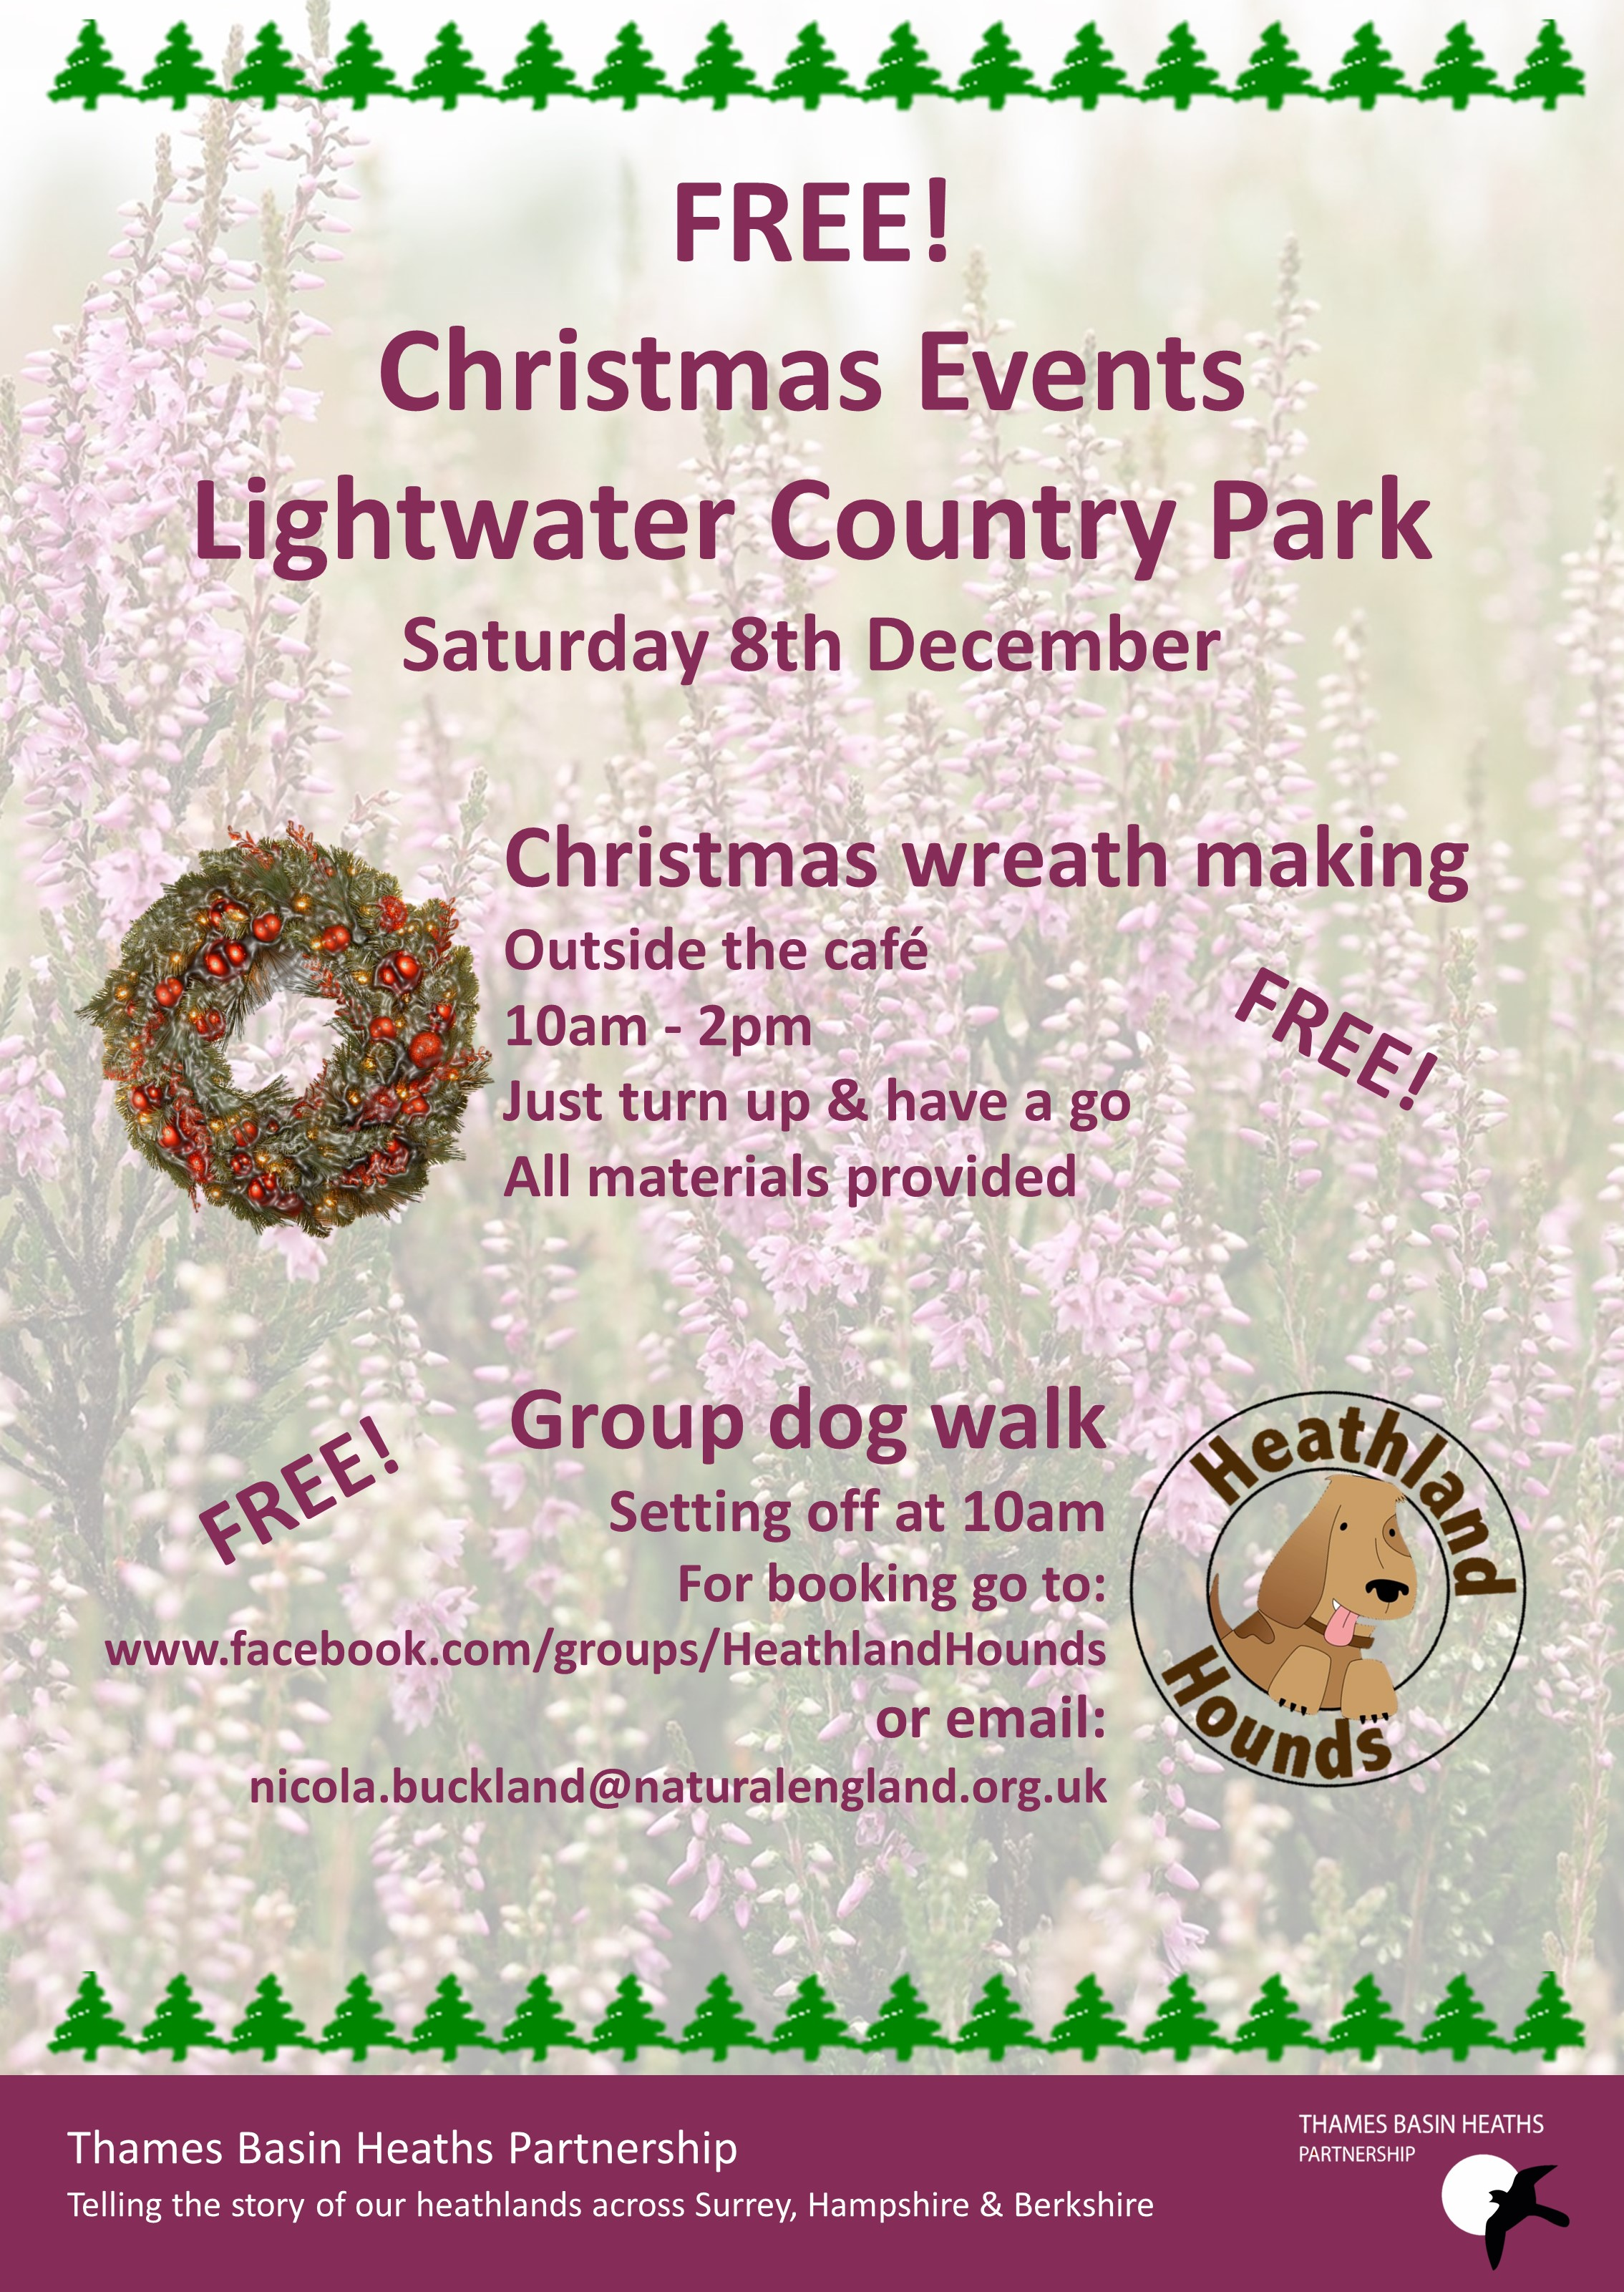 Christmas events at Lightwater Country Park